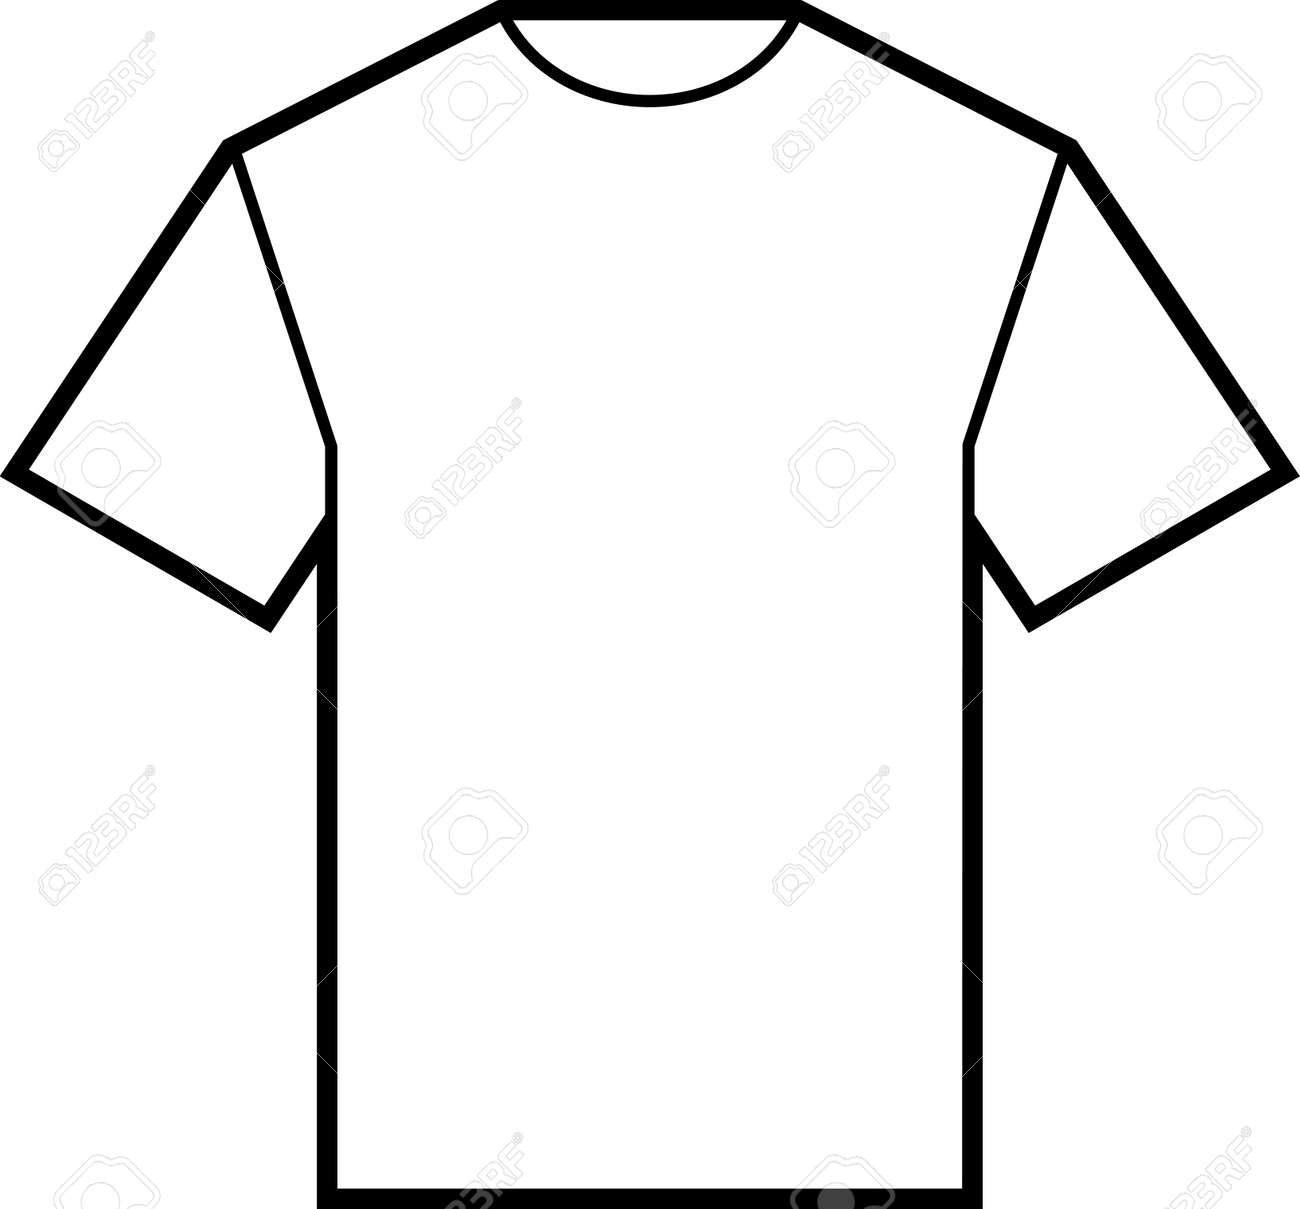 Charmant Kinder T Shirt Vorlage Bilder - Entry Level Resume Vorlagen ...